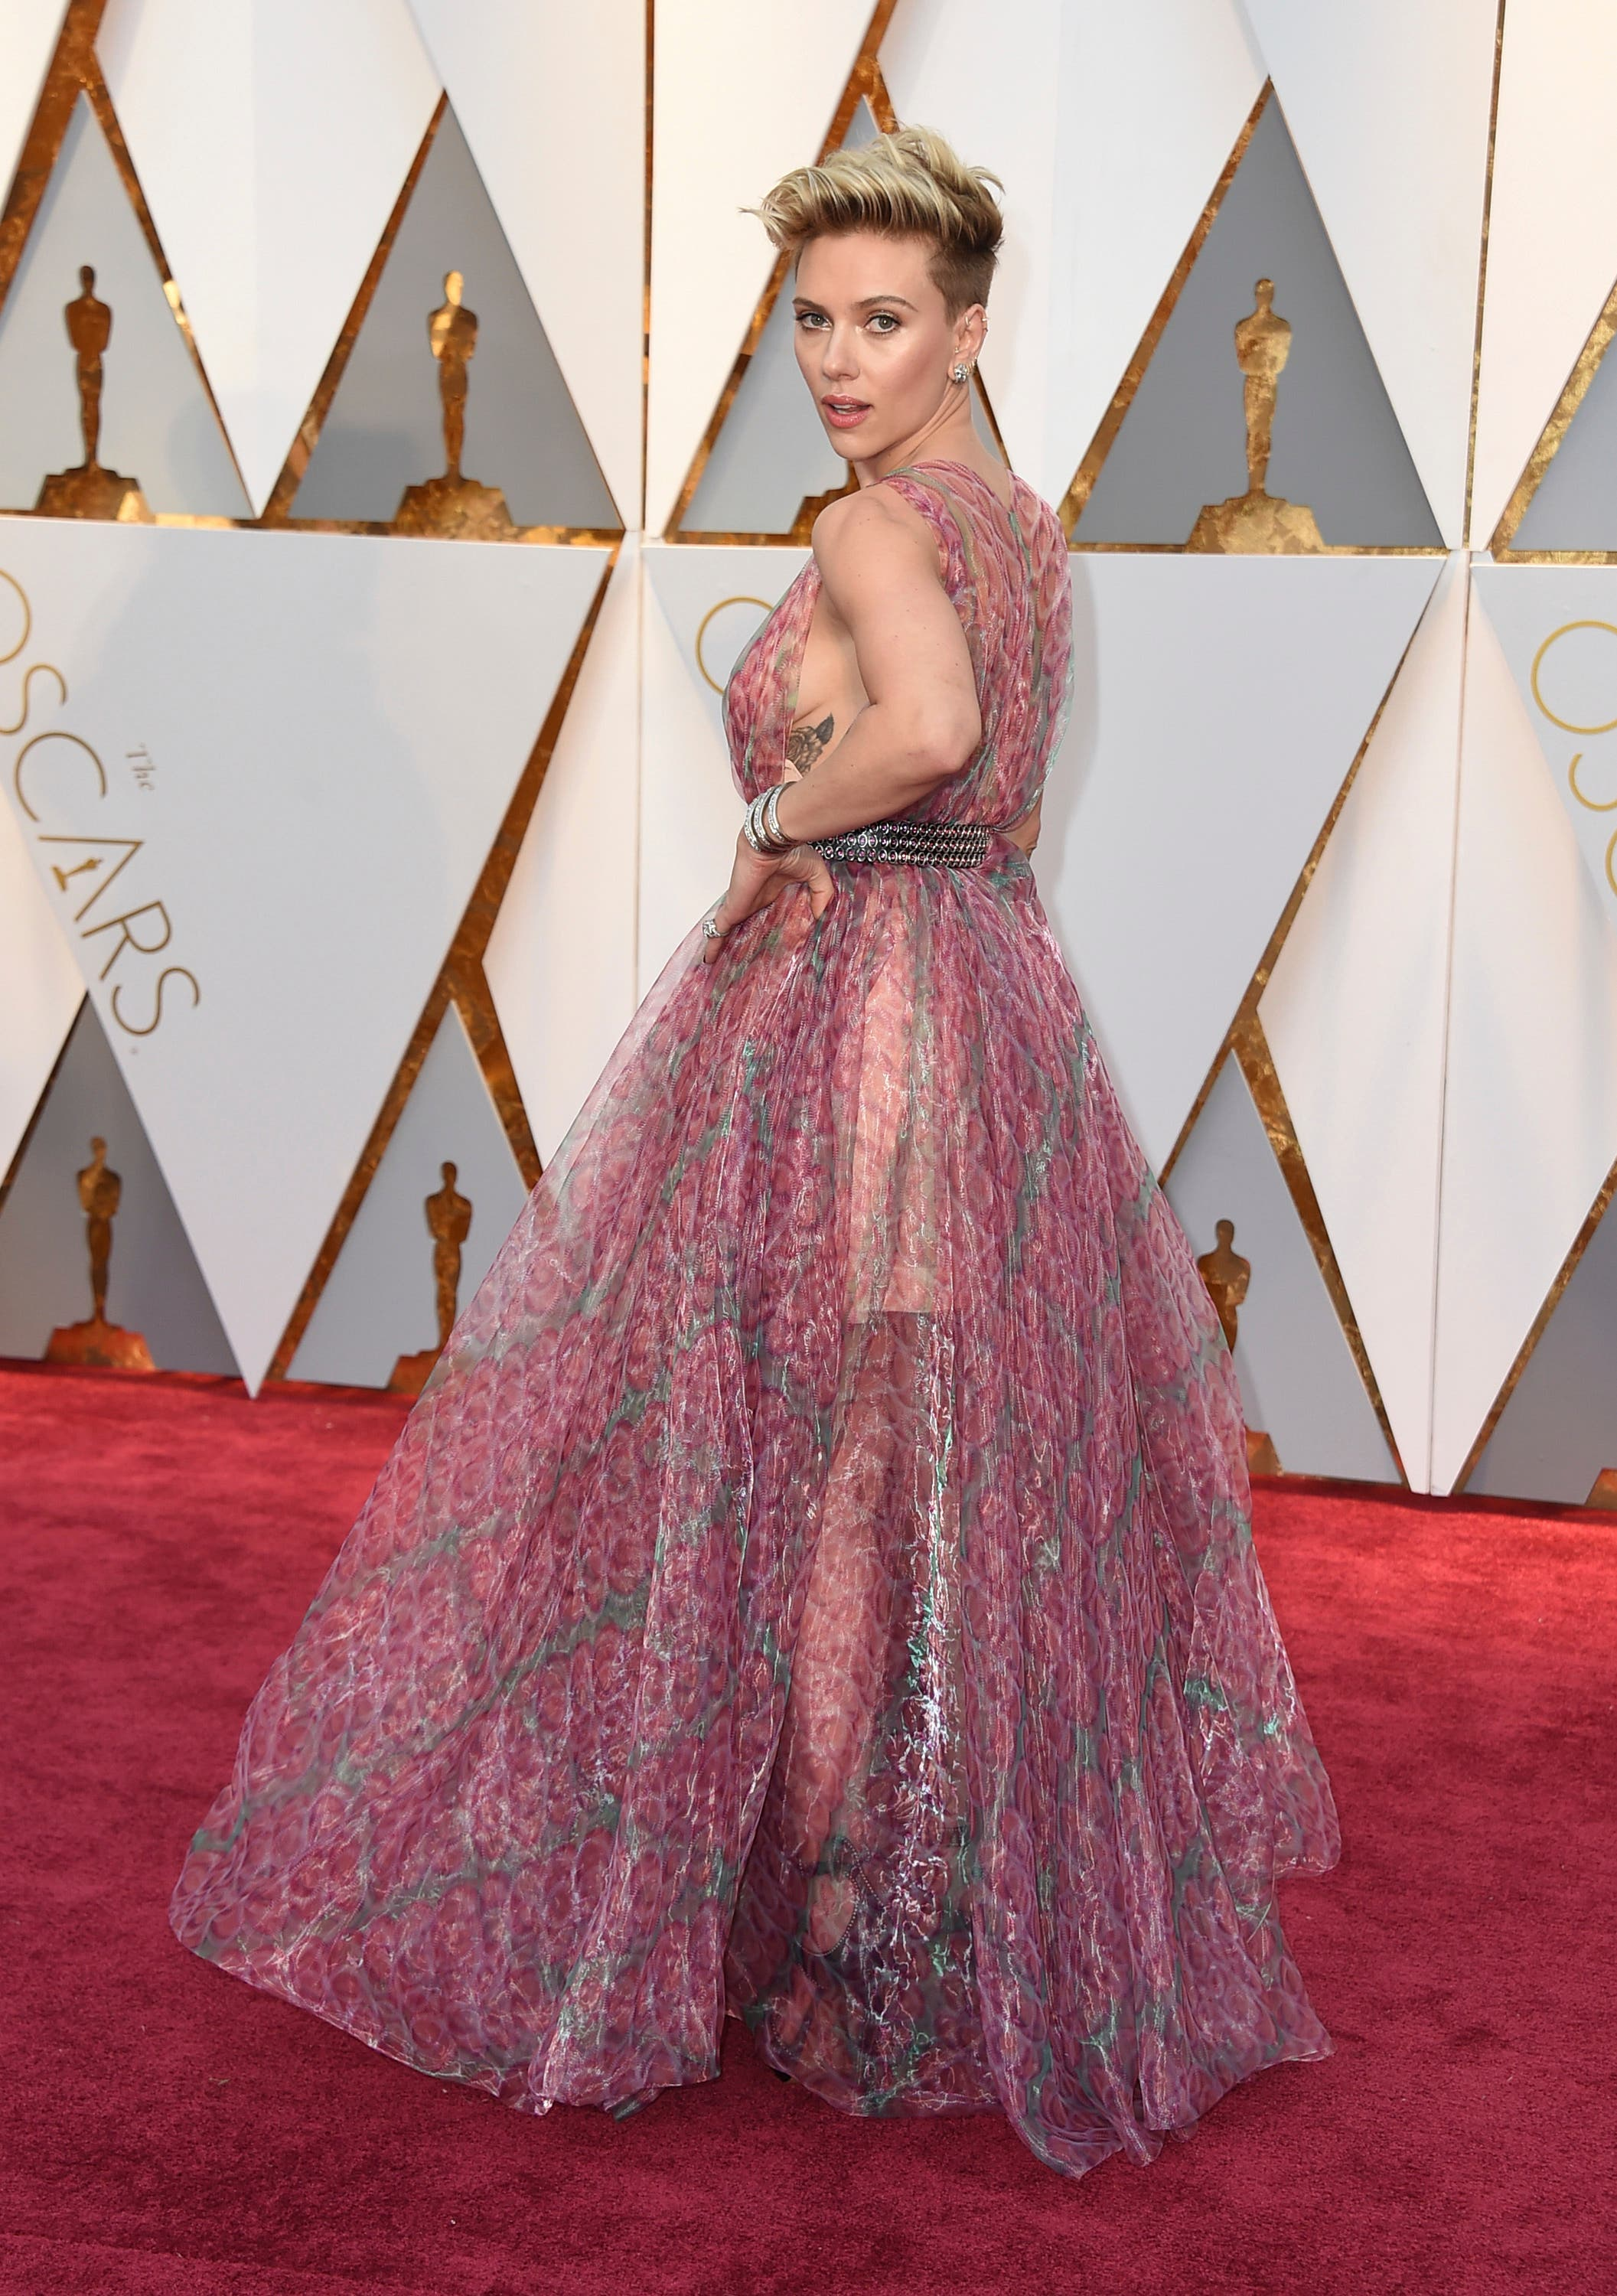 Scarlett Johansson arrives at the Oscars on Sunday, Feb. 26, 2017, at the Dolby Theatre in Los Angeles.